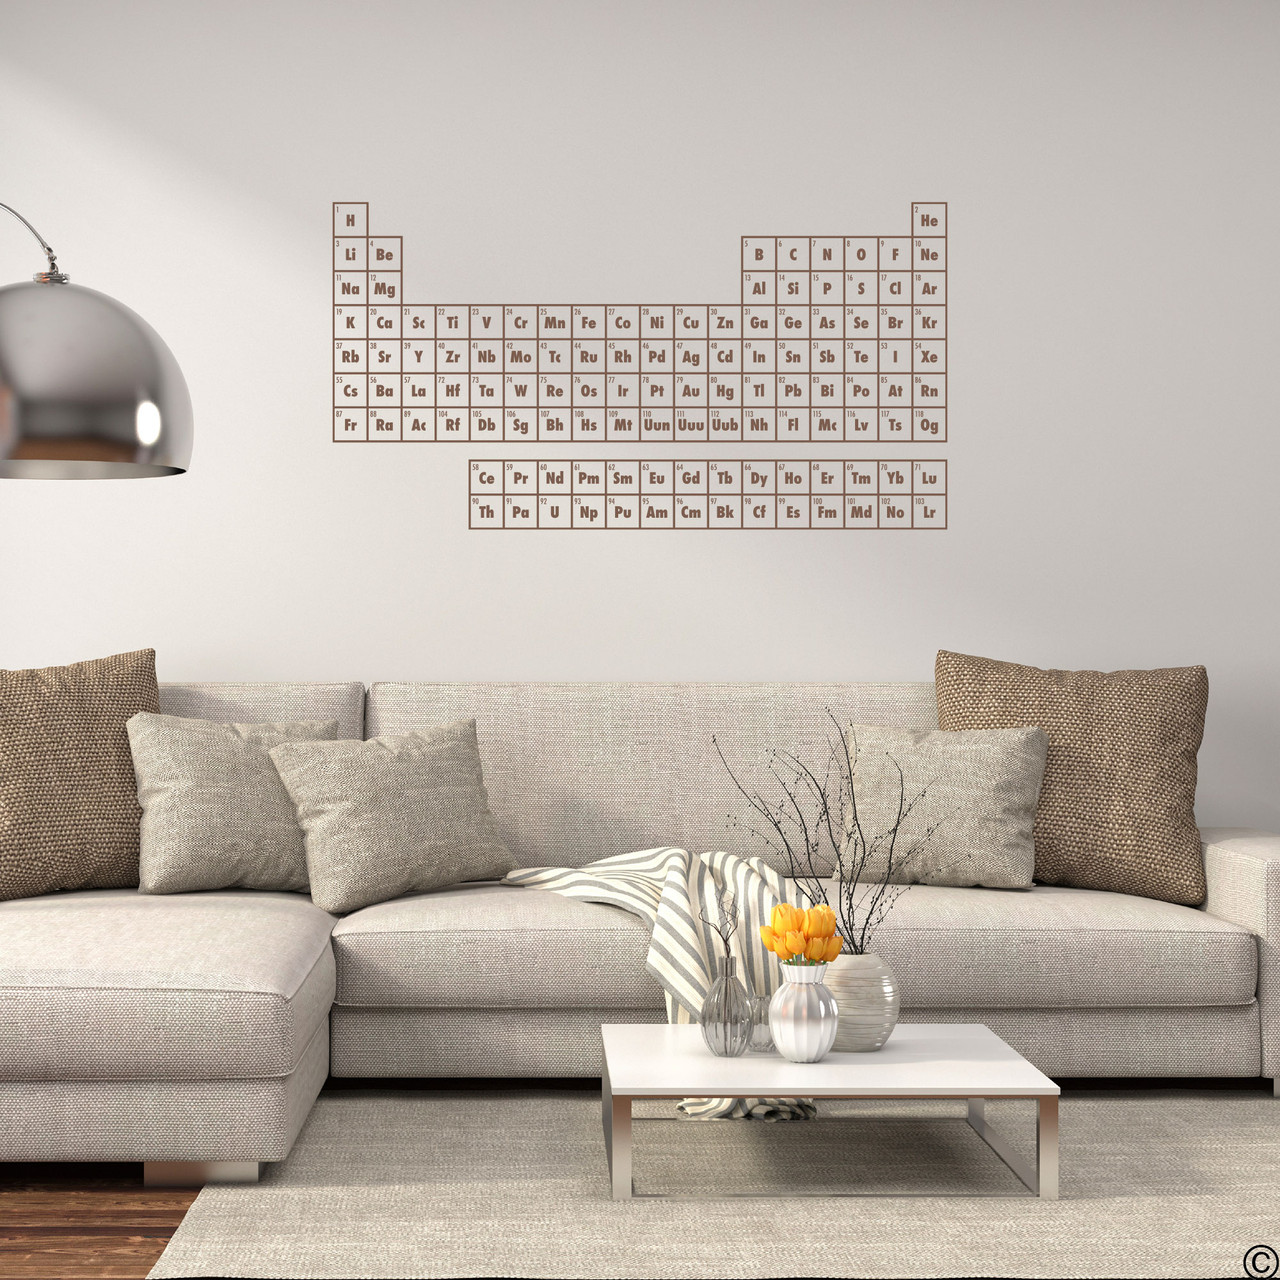 The Periodic Table of Elements wall decal shown here in limited edition espresso vinyl.